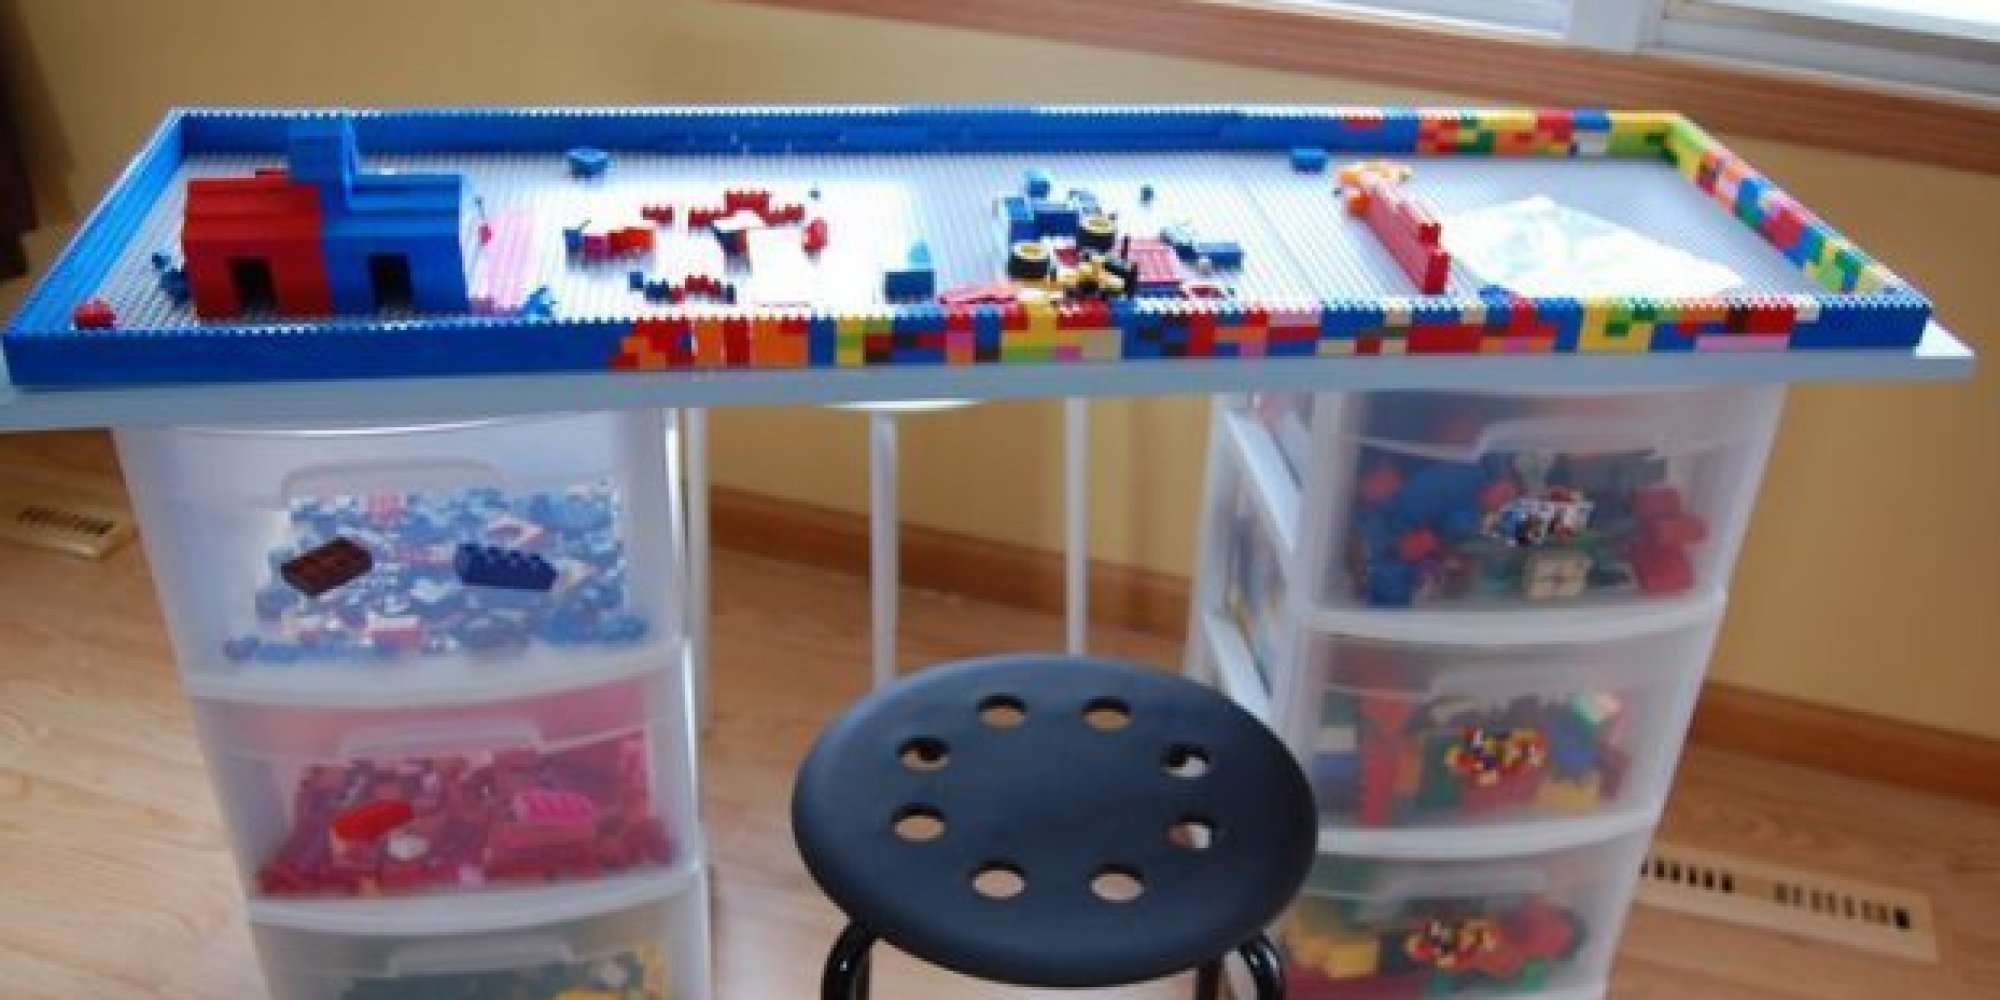 Sonic Bedroom Decor Lego Table 14 Diy Ideas For Your Kids Playroom